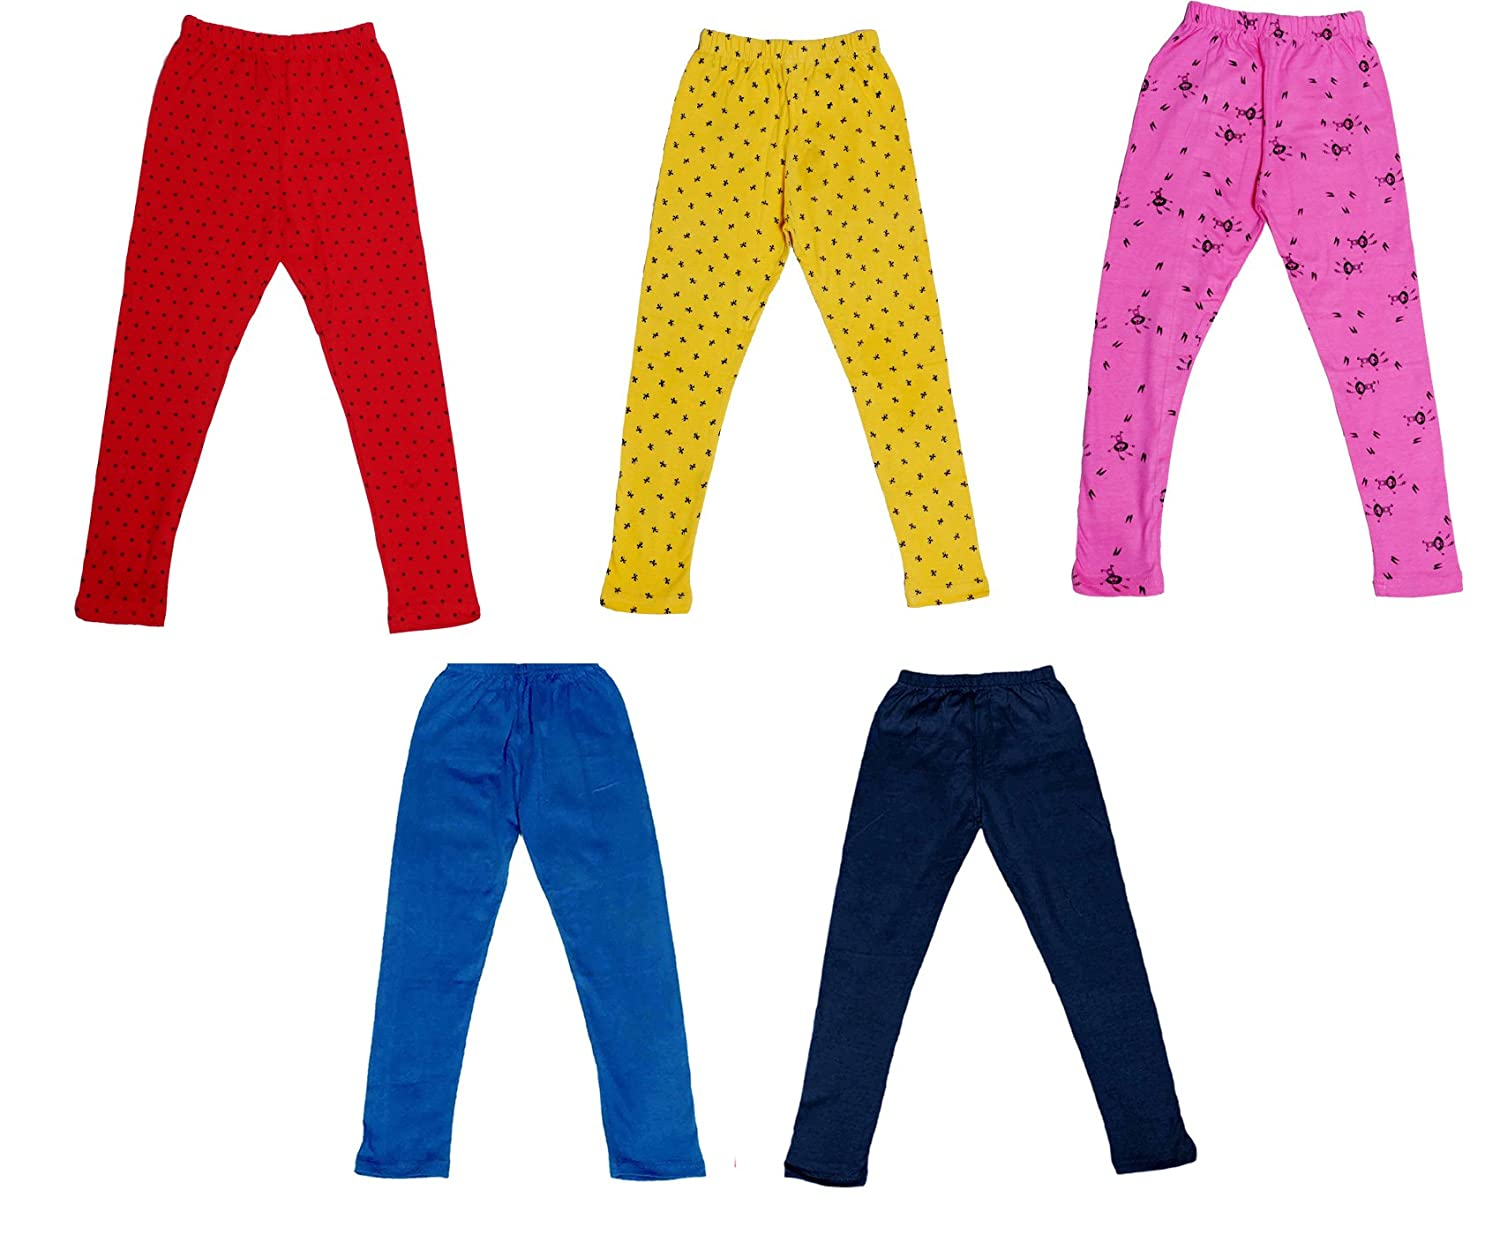 Indistar Super Soft and Stylish 2 Solid and 3 Cotton Printed Leggings For Girls(Pack of 5)